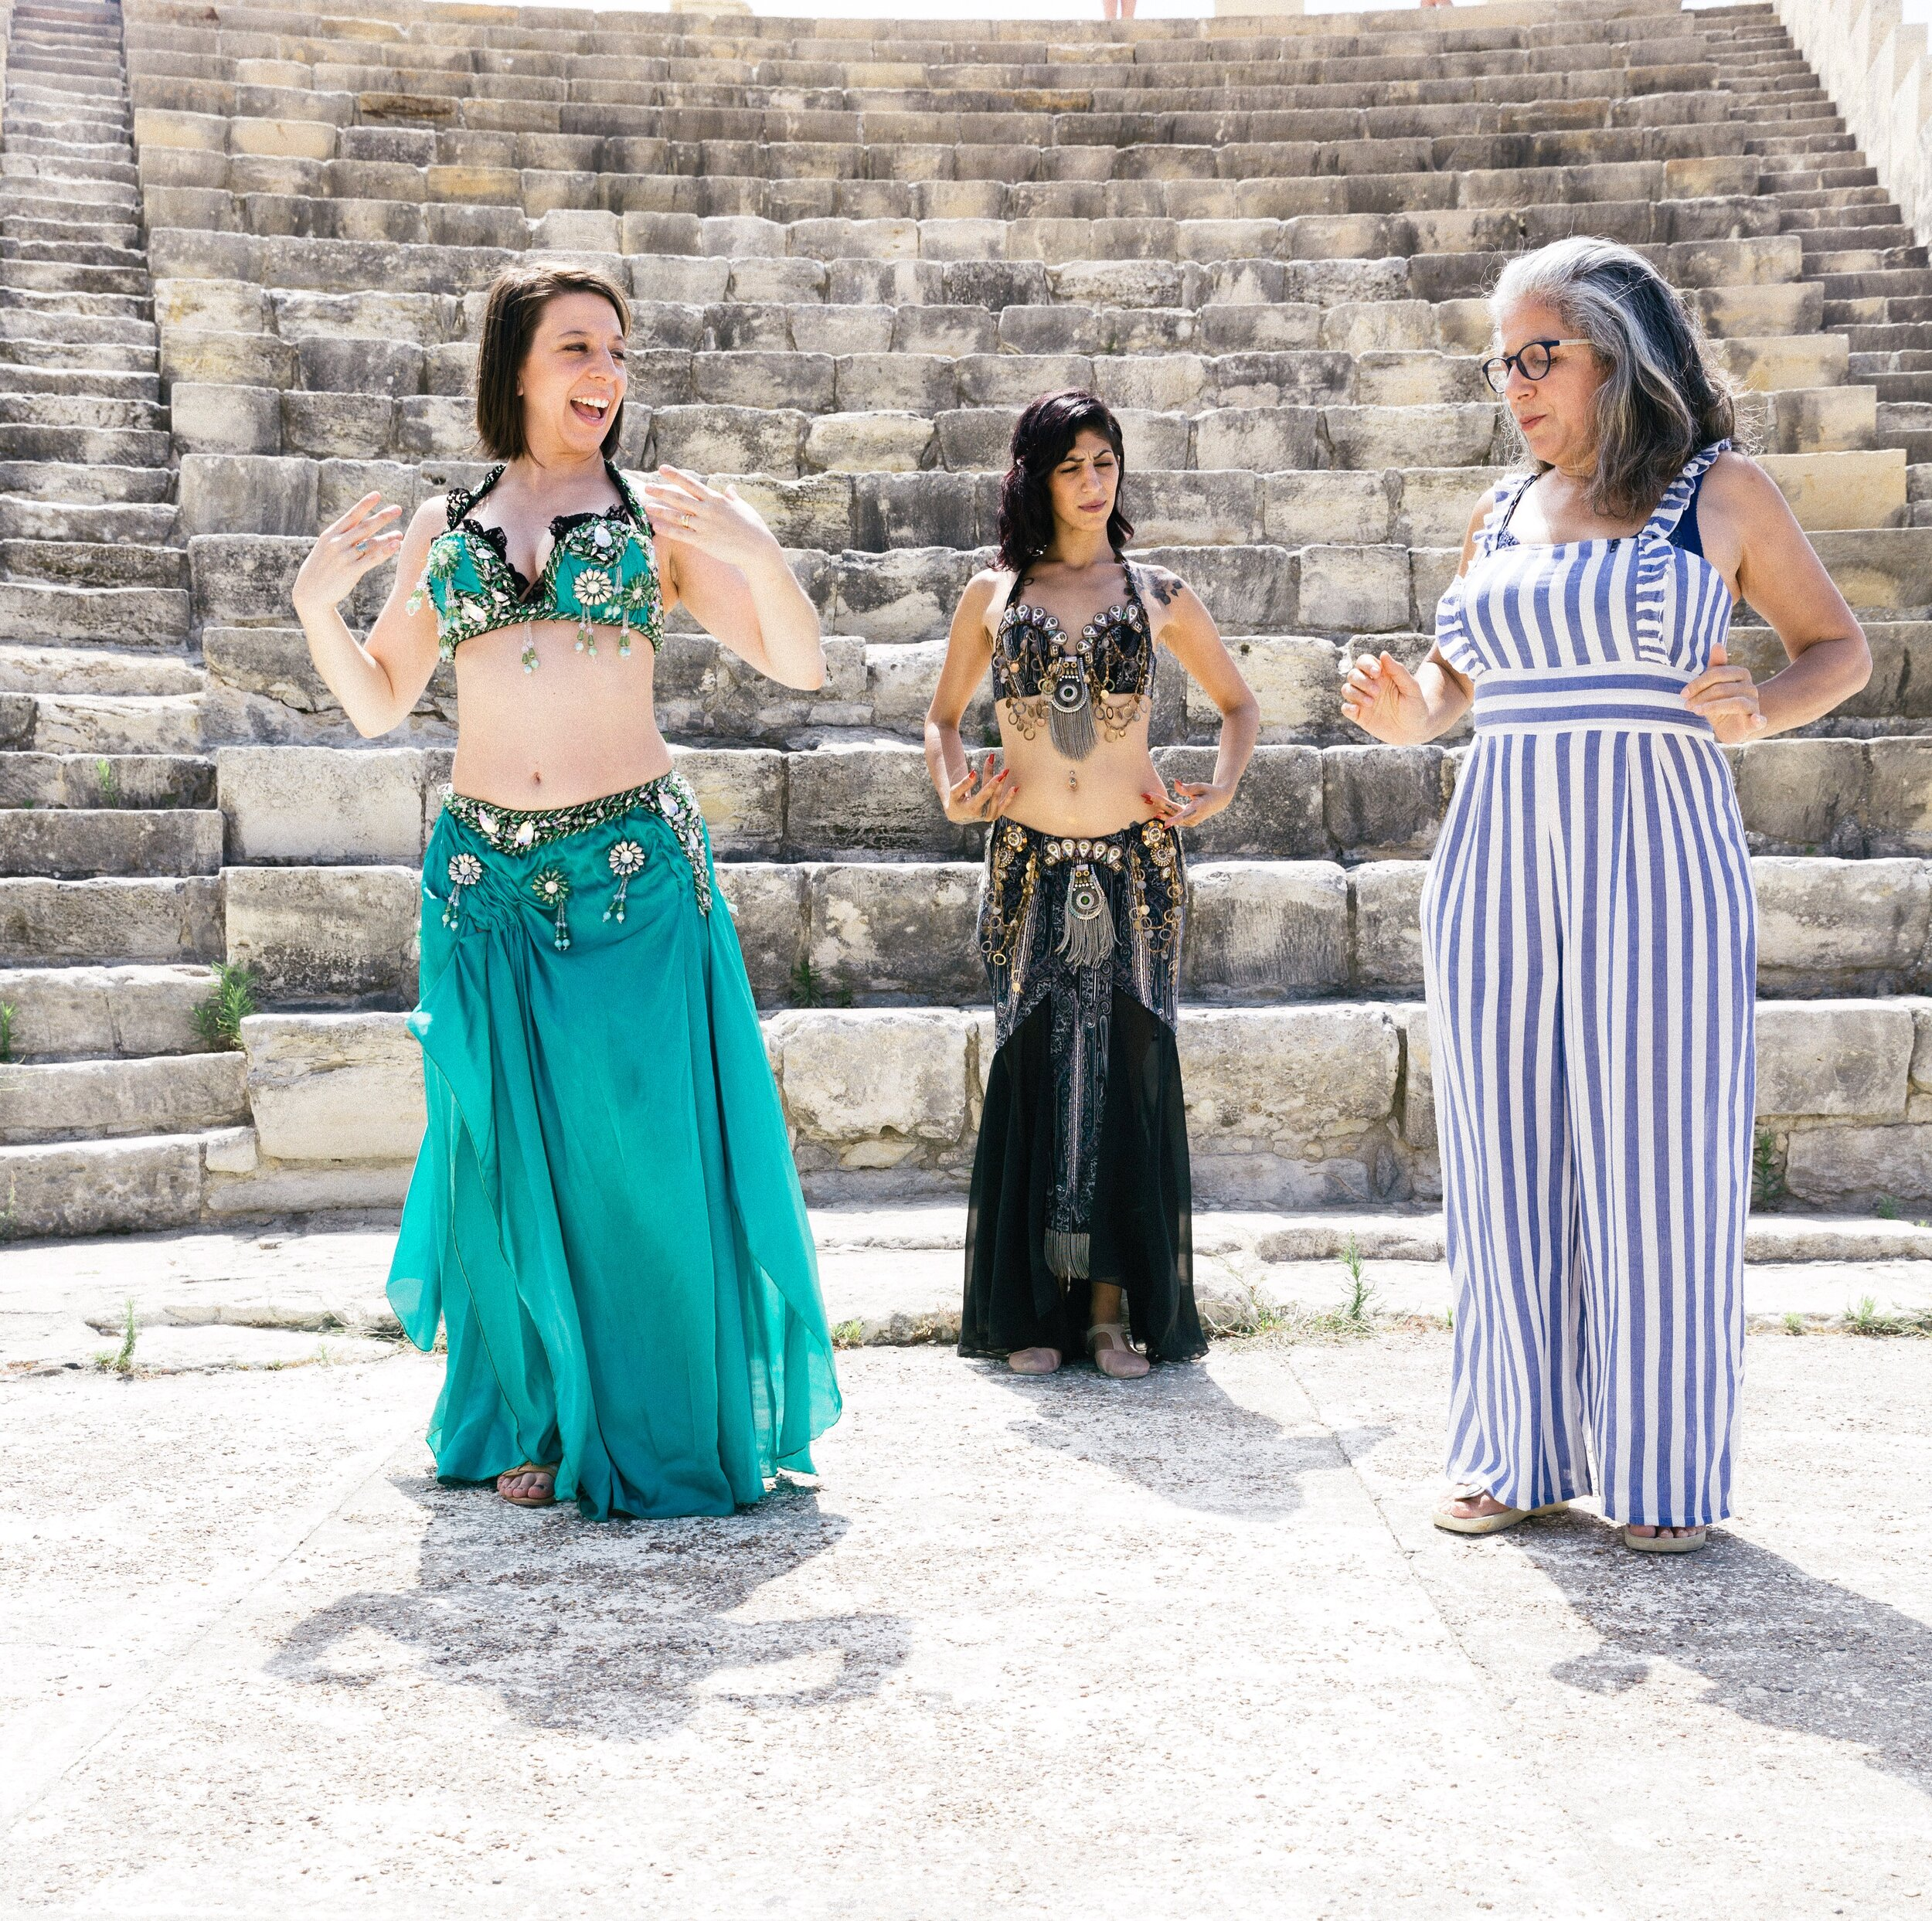 304 Cyprus - Mickela Mallozzi learning Oriental Dance in Cyprus with Sylvia Serena - photo by Shoot My Travel.JPG